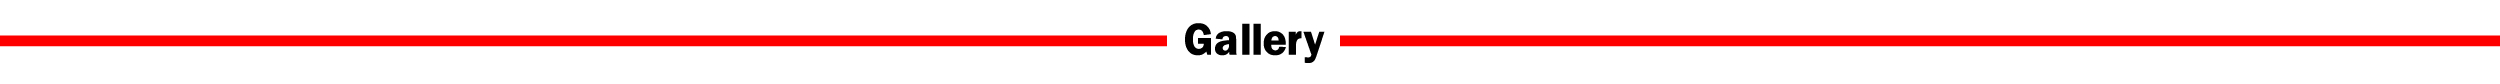 Installation Gallery spacer